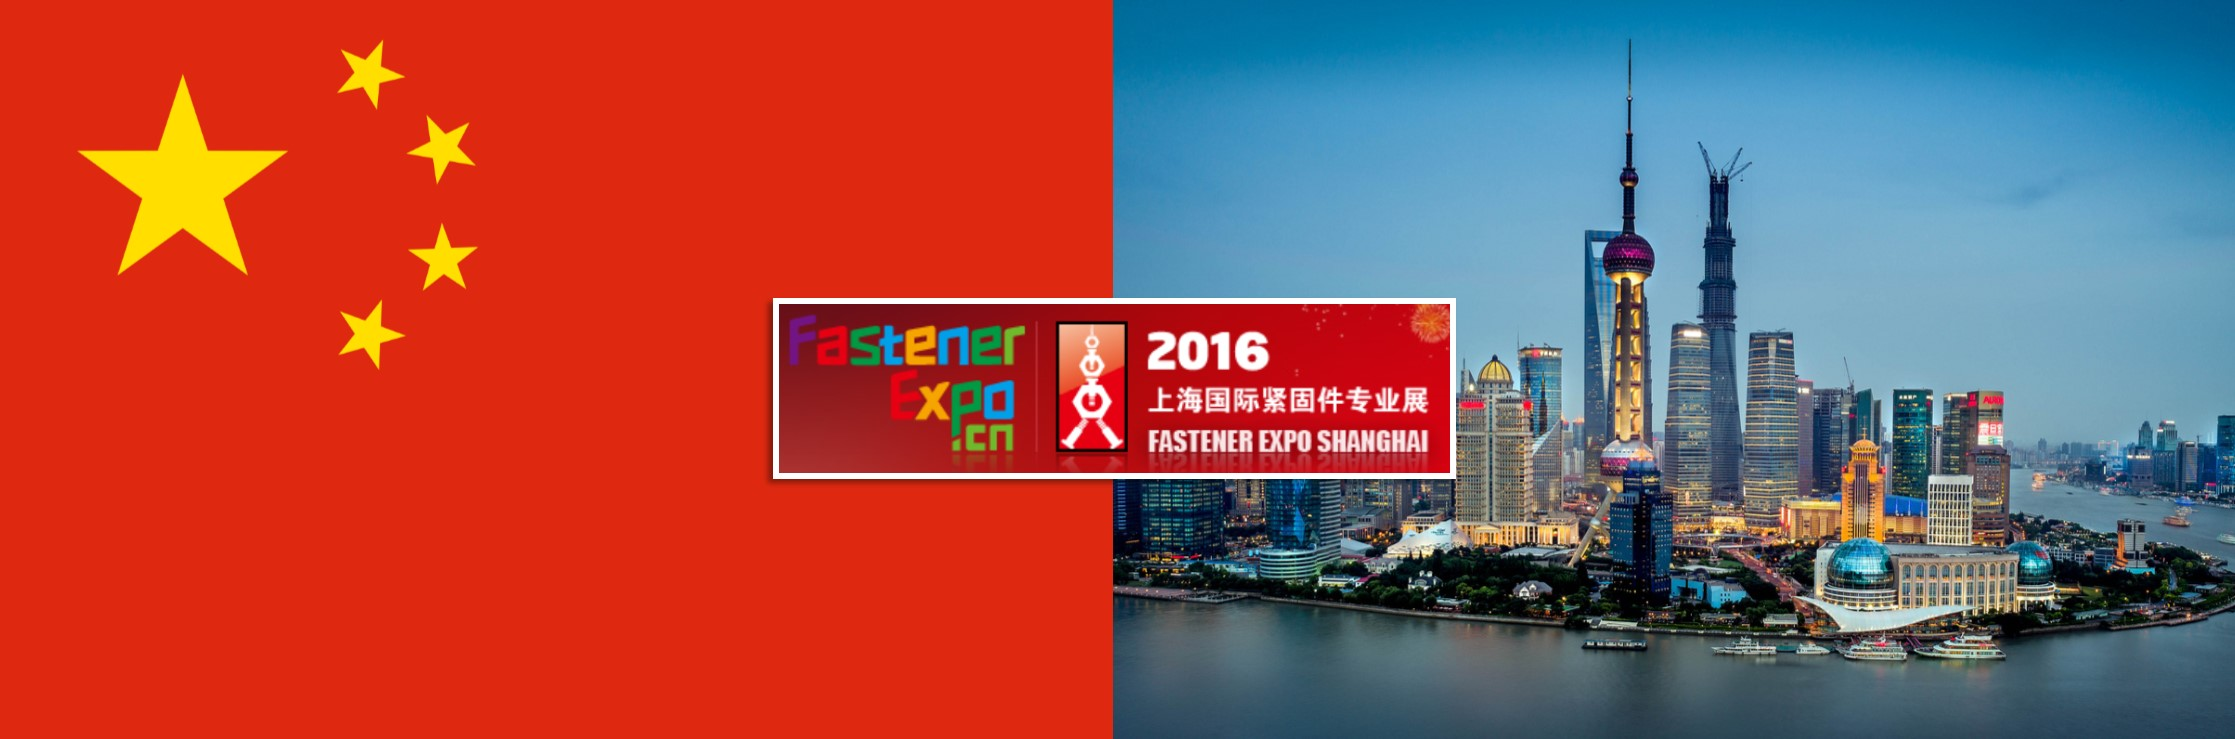 Fastener Expo Shanghai - 23rd to 25th June 2016